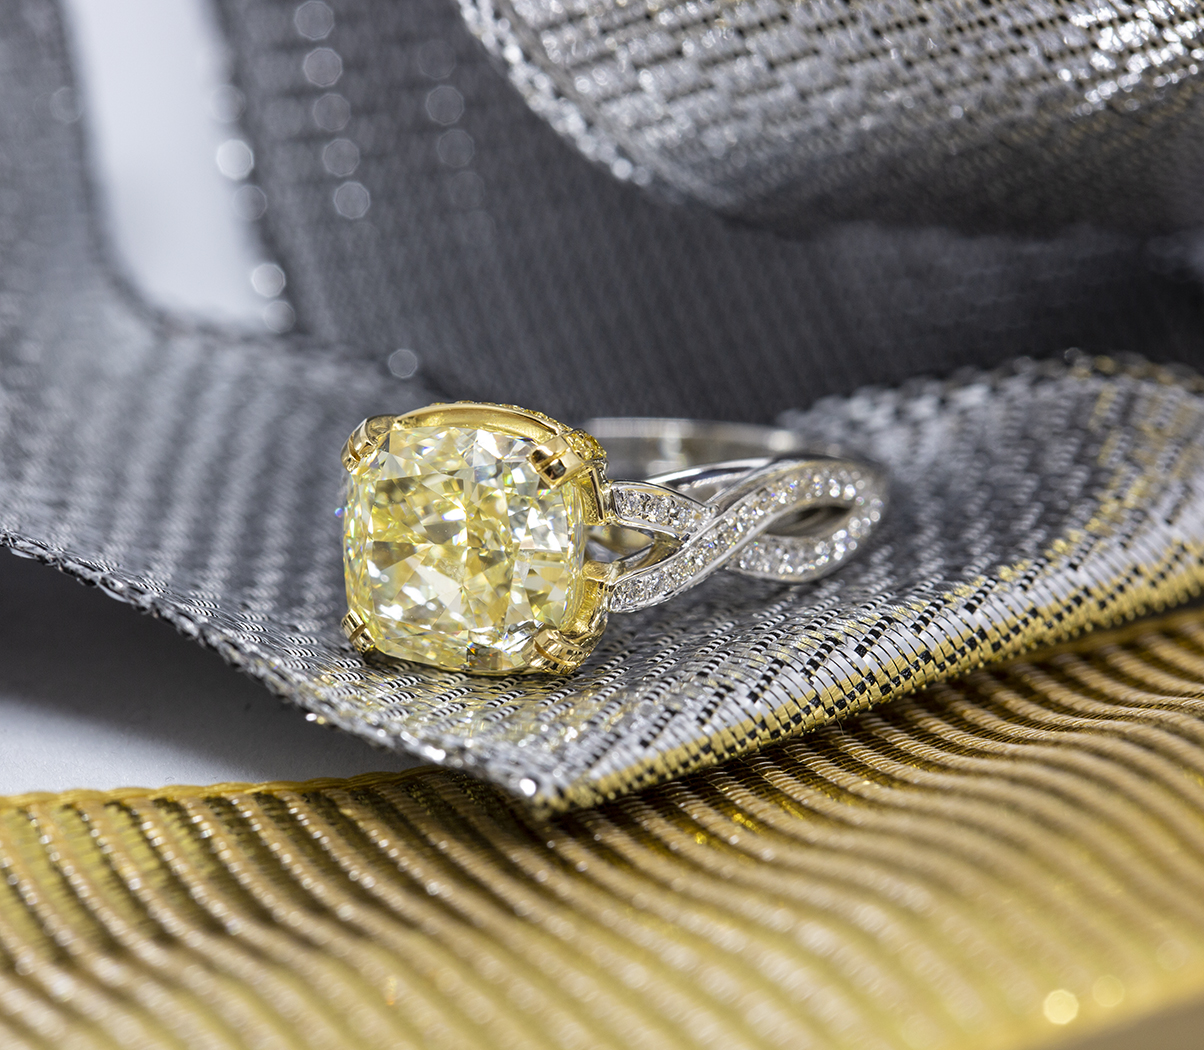 alternate view of yellow diamond ring